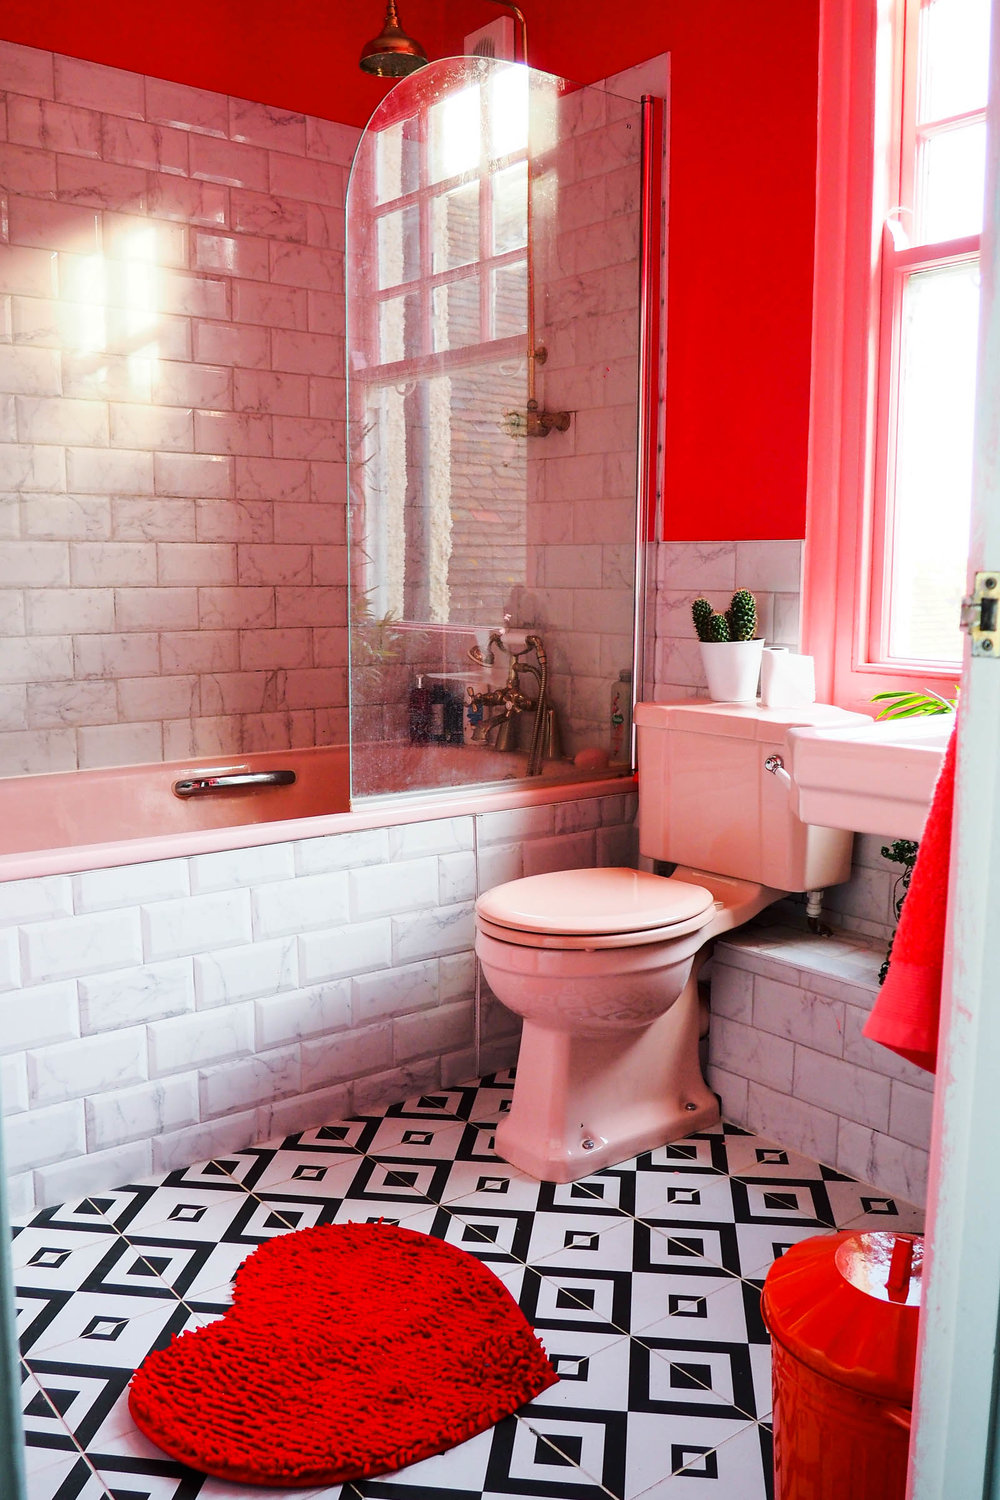 Black white and pink bathroom - Amy S Pink And Marble Bathroom With Black And White Tiles Green Houseplants And Brass Accents